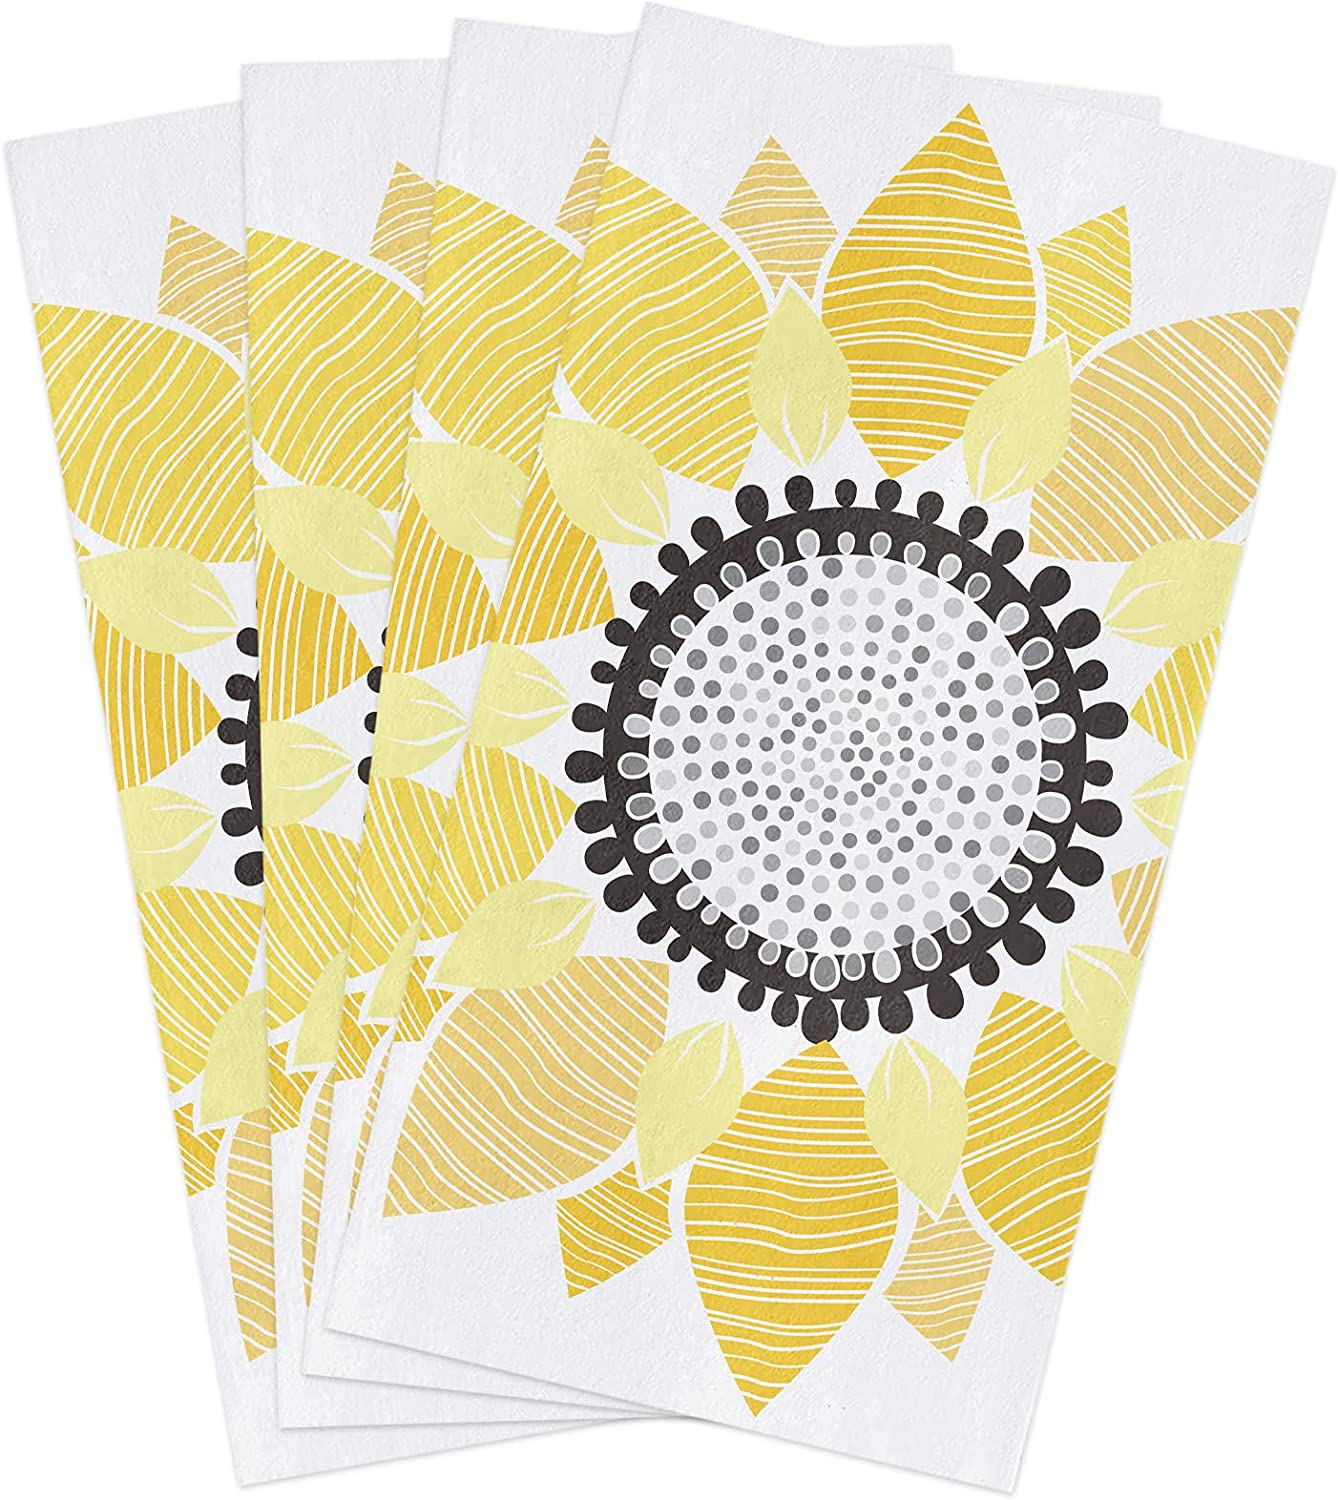 Kitchen Towels Set Abstract Sunflower Popular popular Free shipping New Yellow Towel Floral Dish B